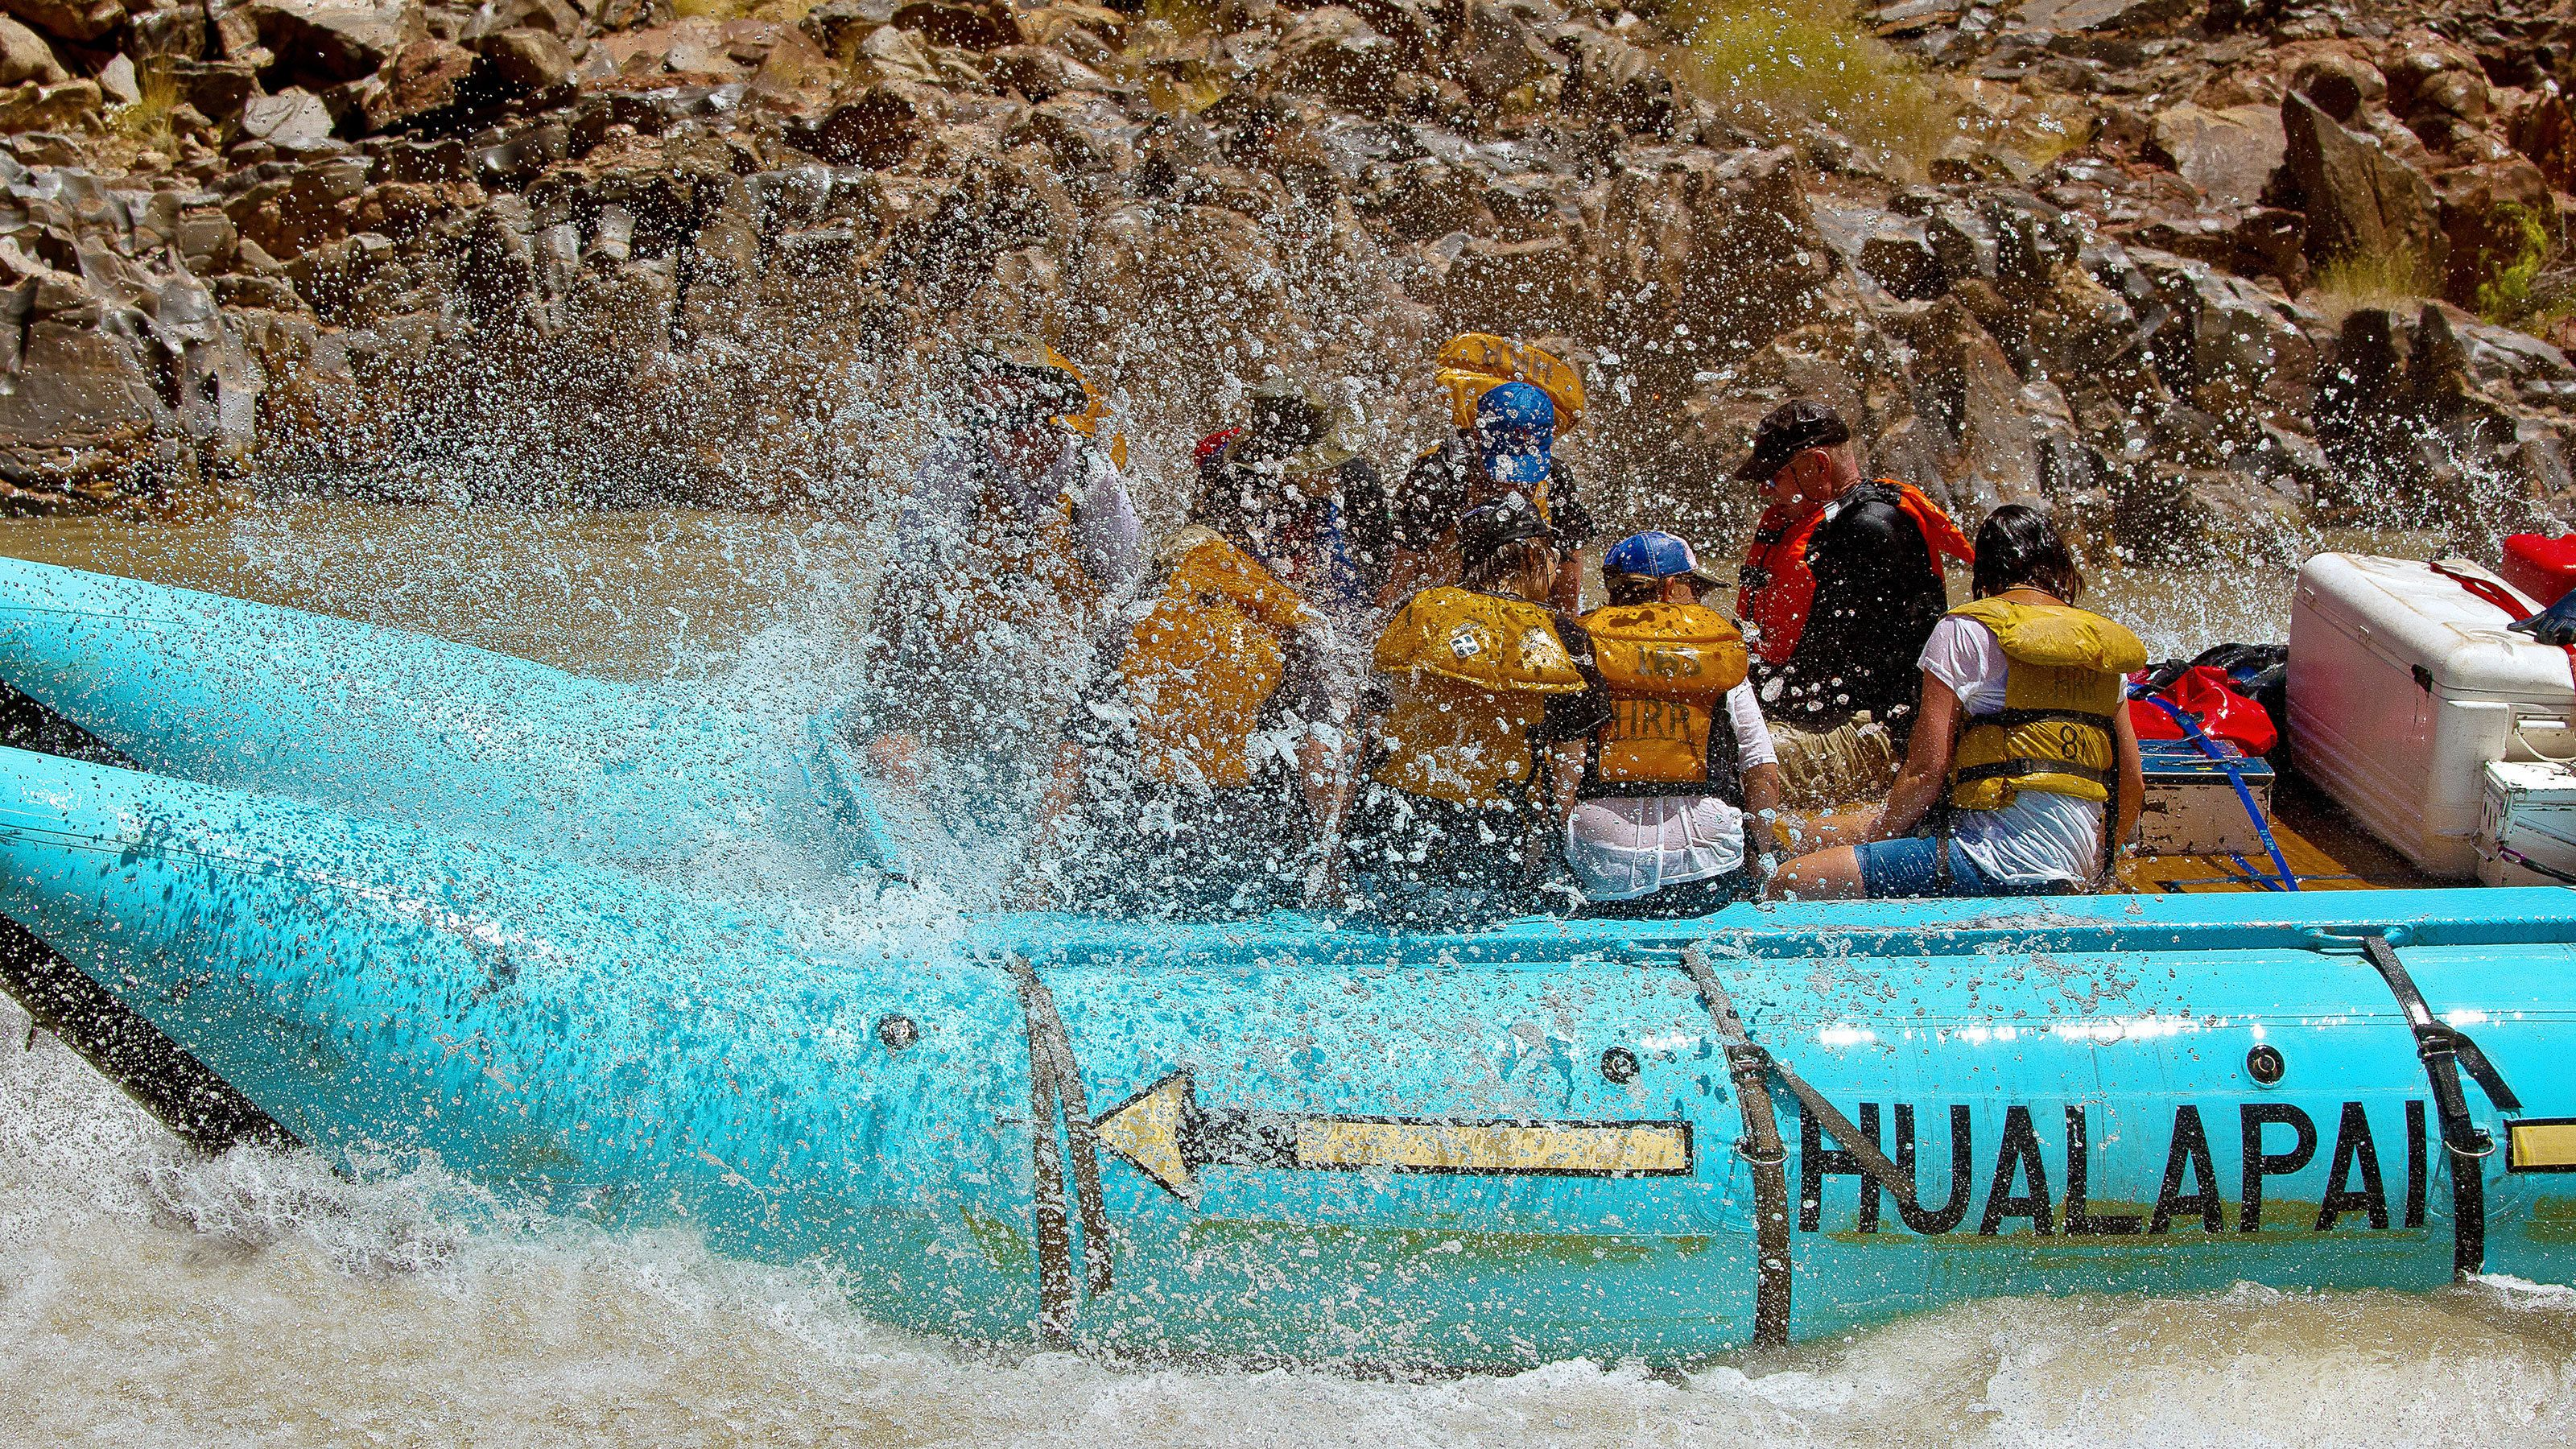 Whitewater raft trip through the Colorado River